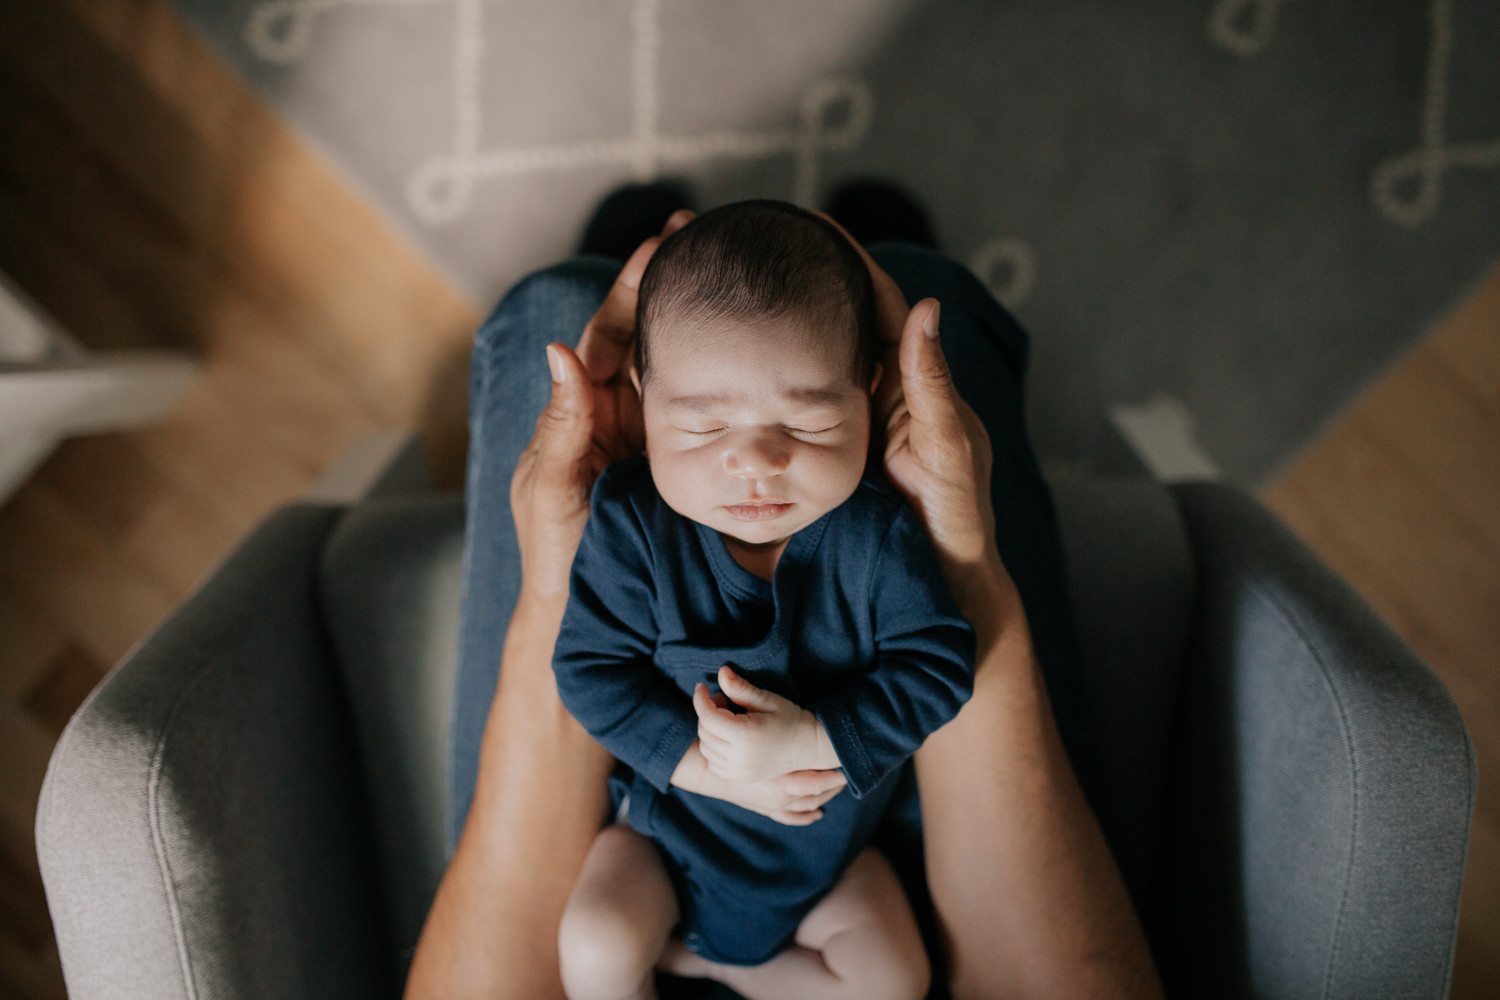 father sitting in nursery rocker holding 2 week old baby boy in navy blue onesie who is sleeping with arms crossed, shot from above - Stouffville In-Home Photography